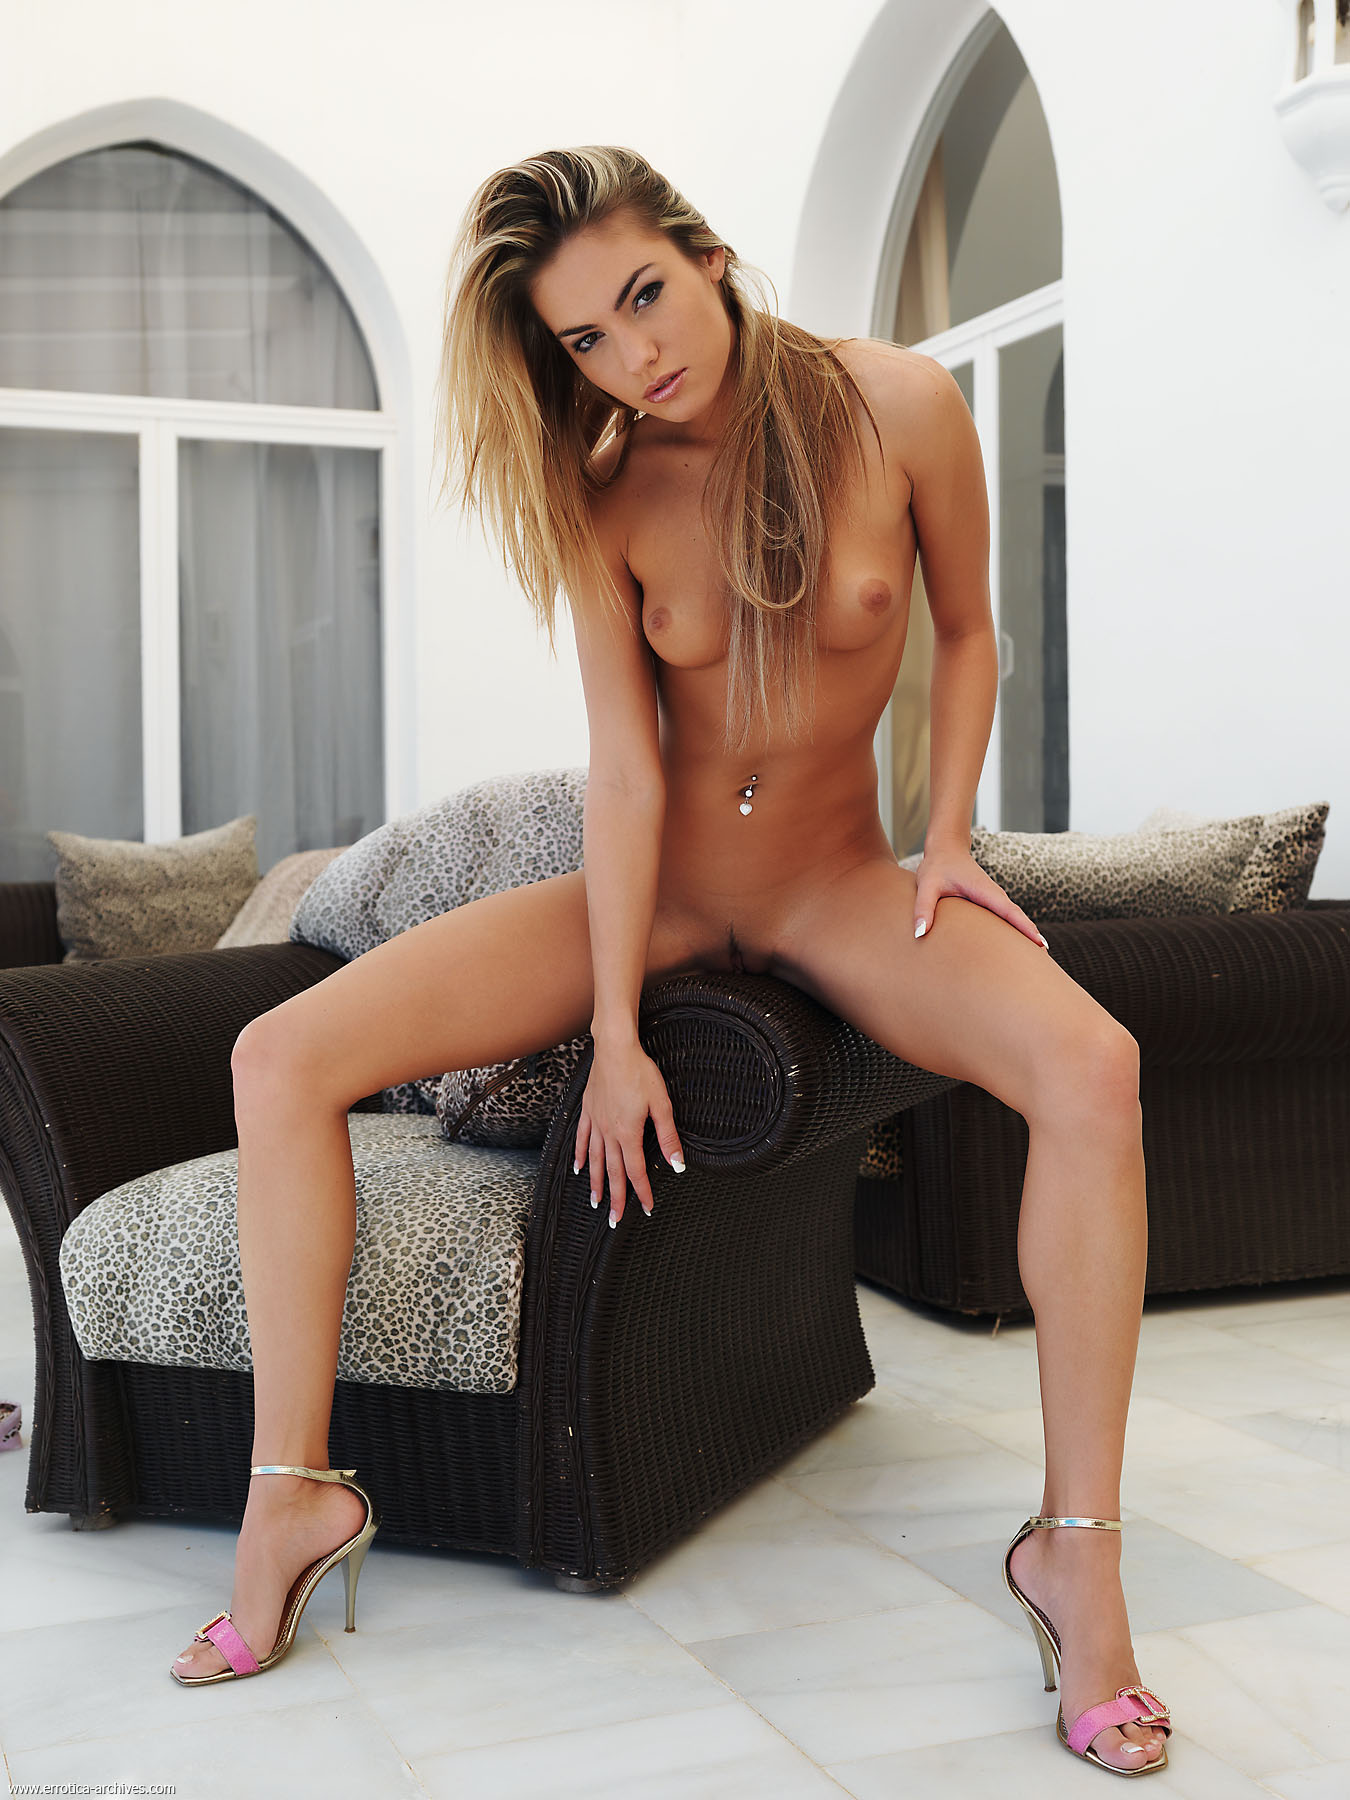 slender naked seductress with long hair and legs demonstrates her